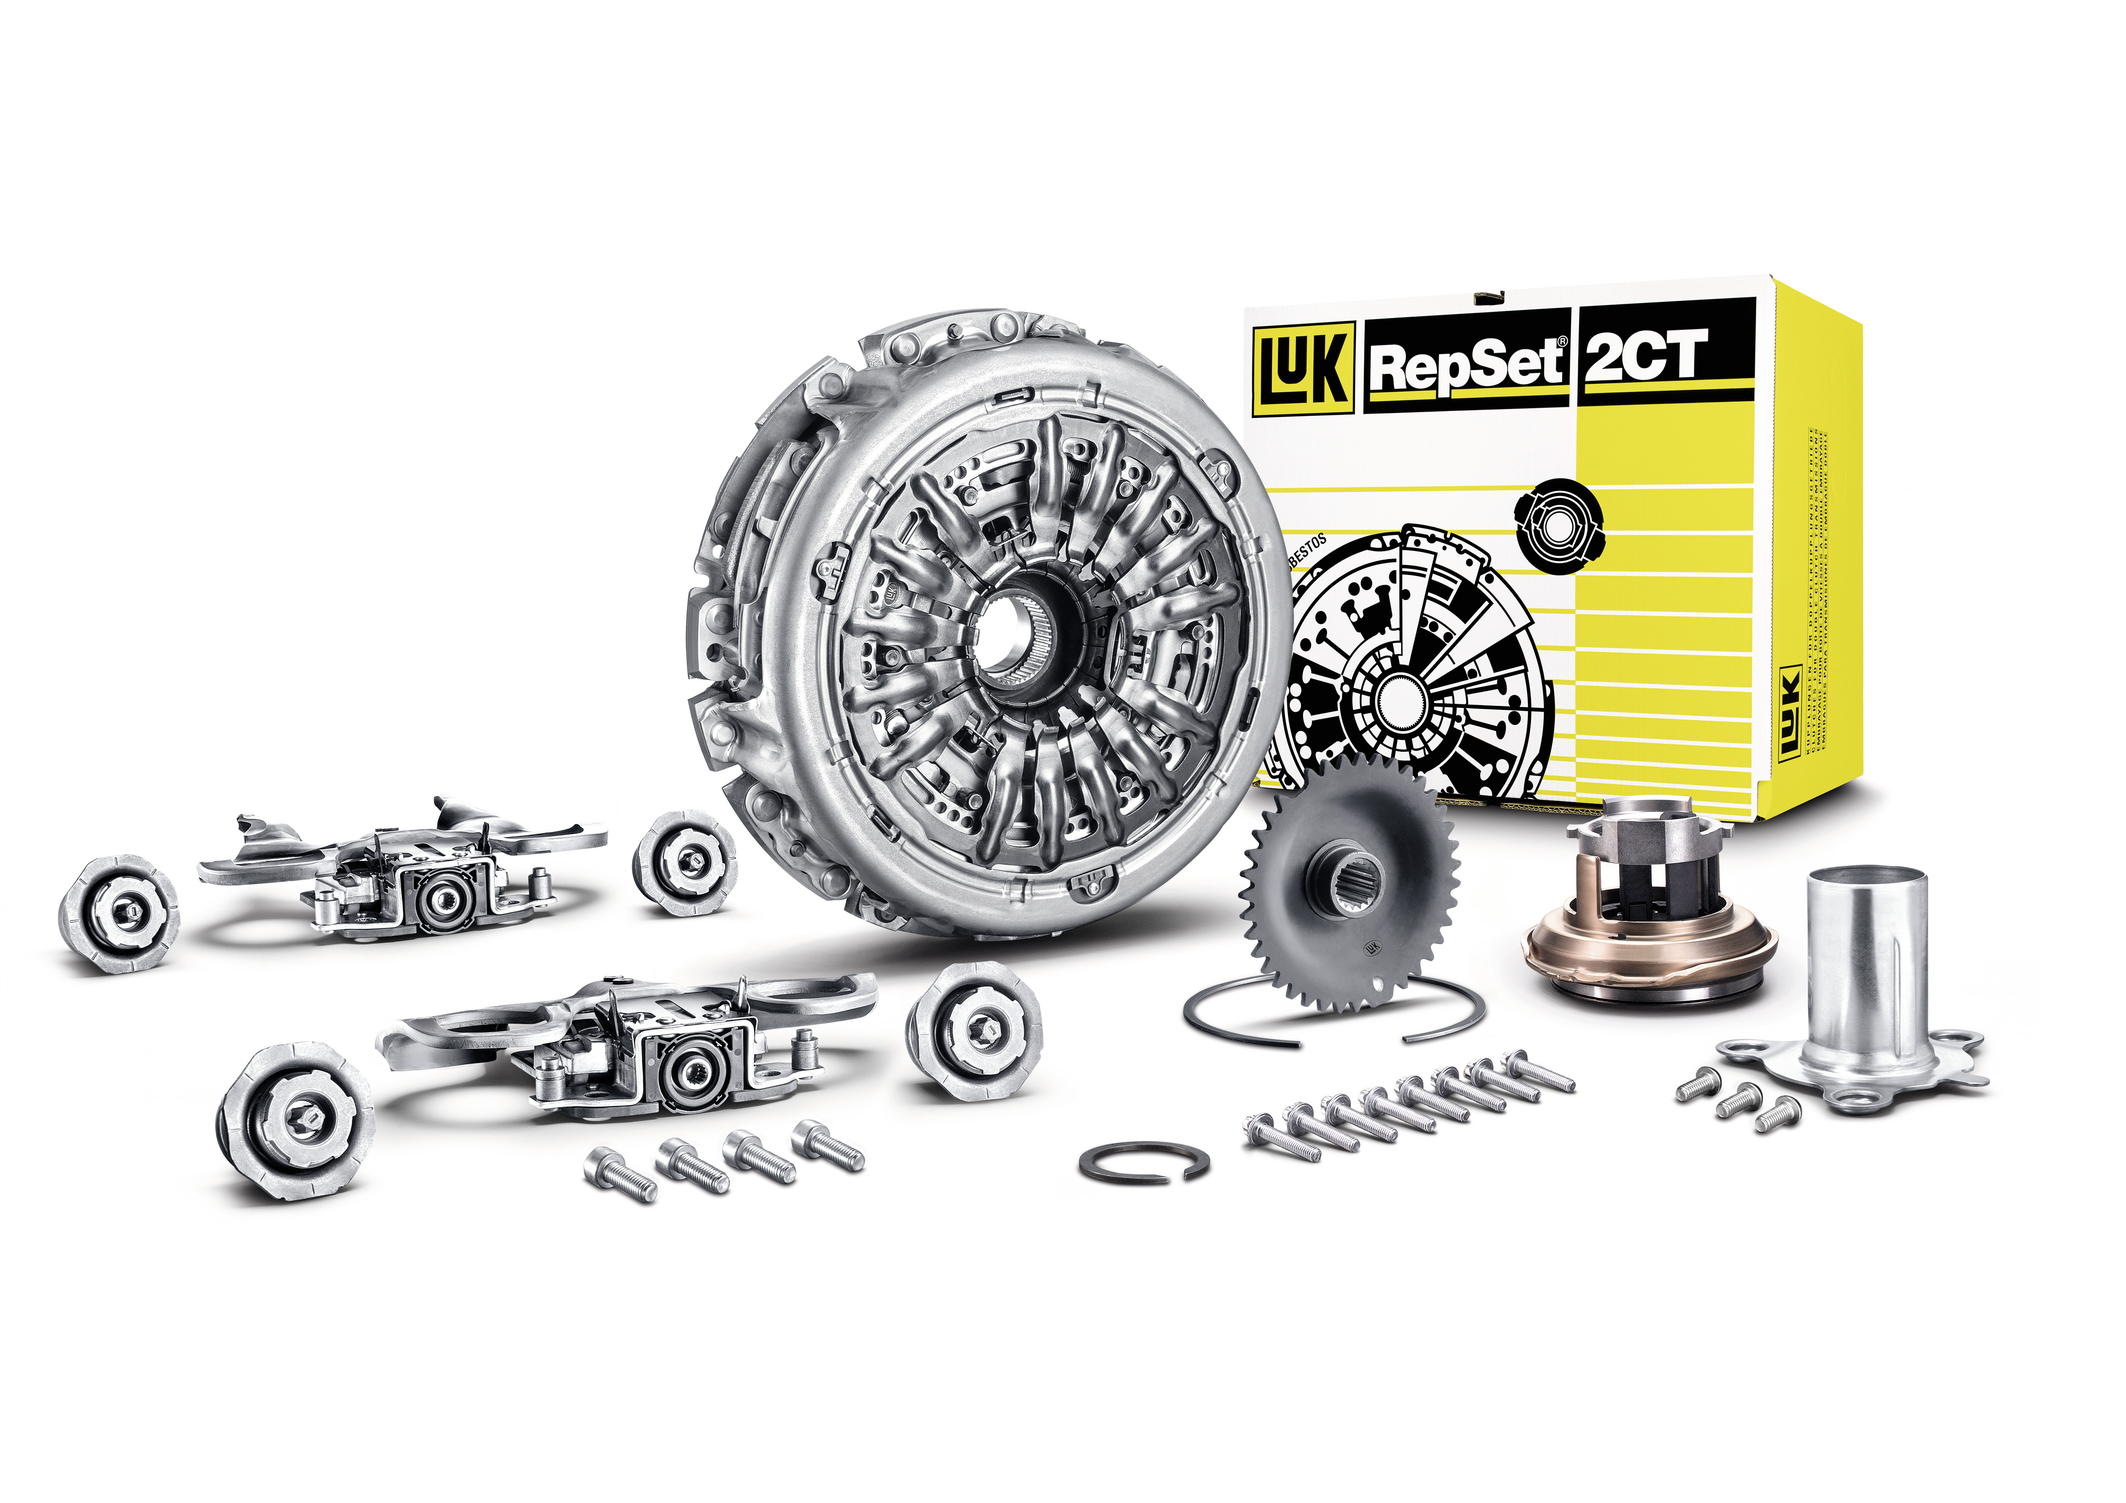 LuK RepSet 2CT from Schaeffler now also available for Ford